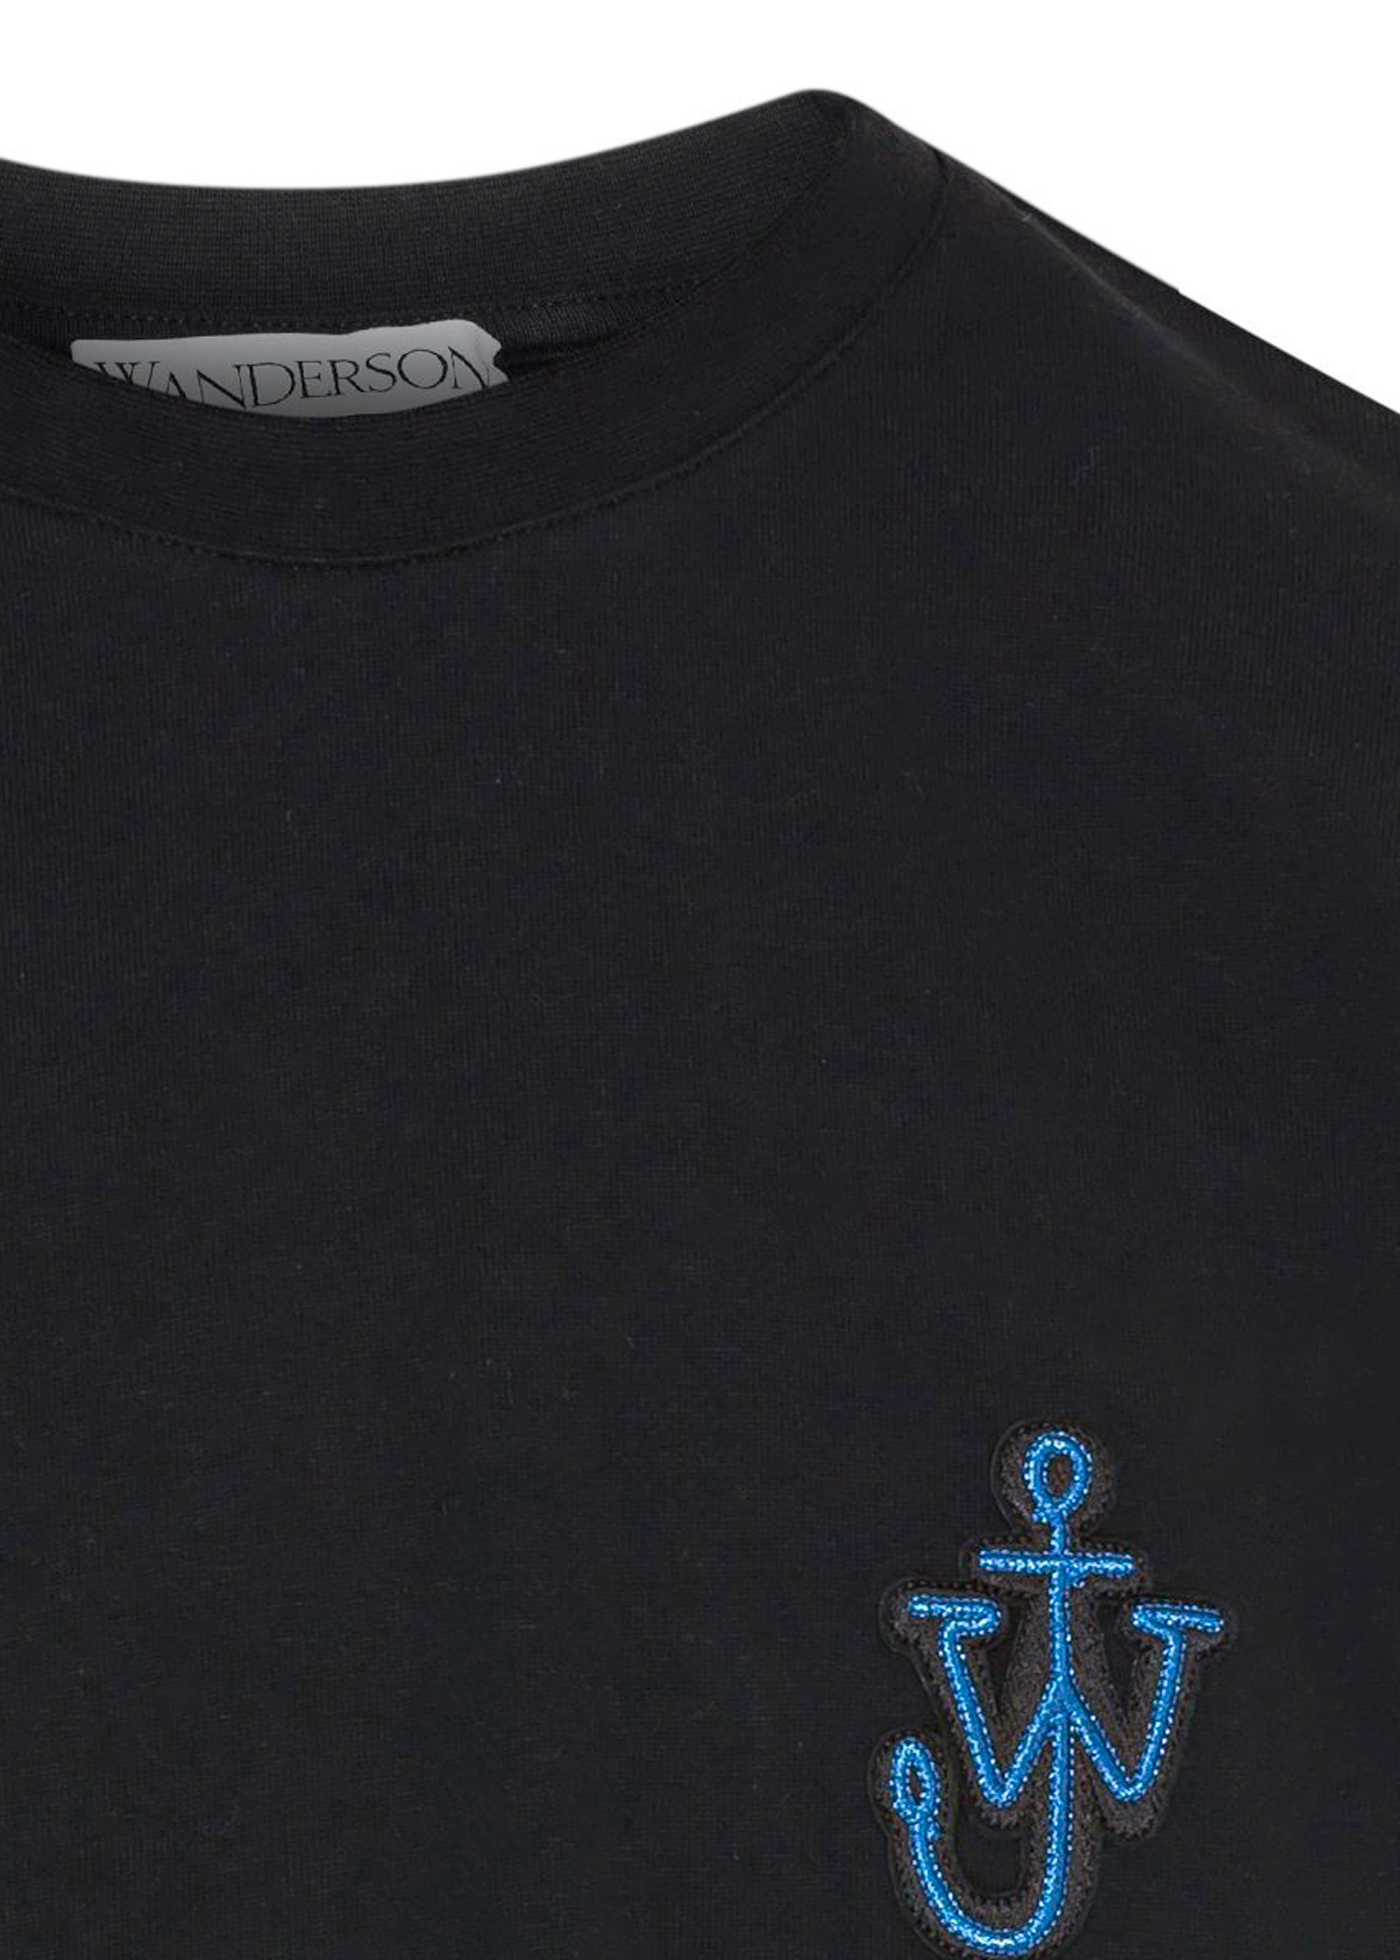 ANCHOR PATCH T-SHIRT image number 2